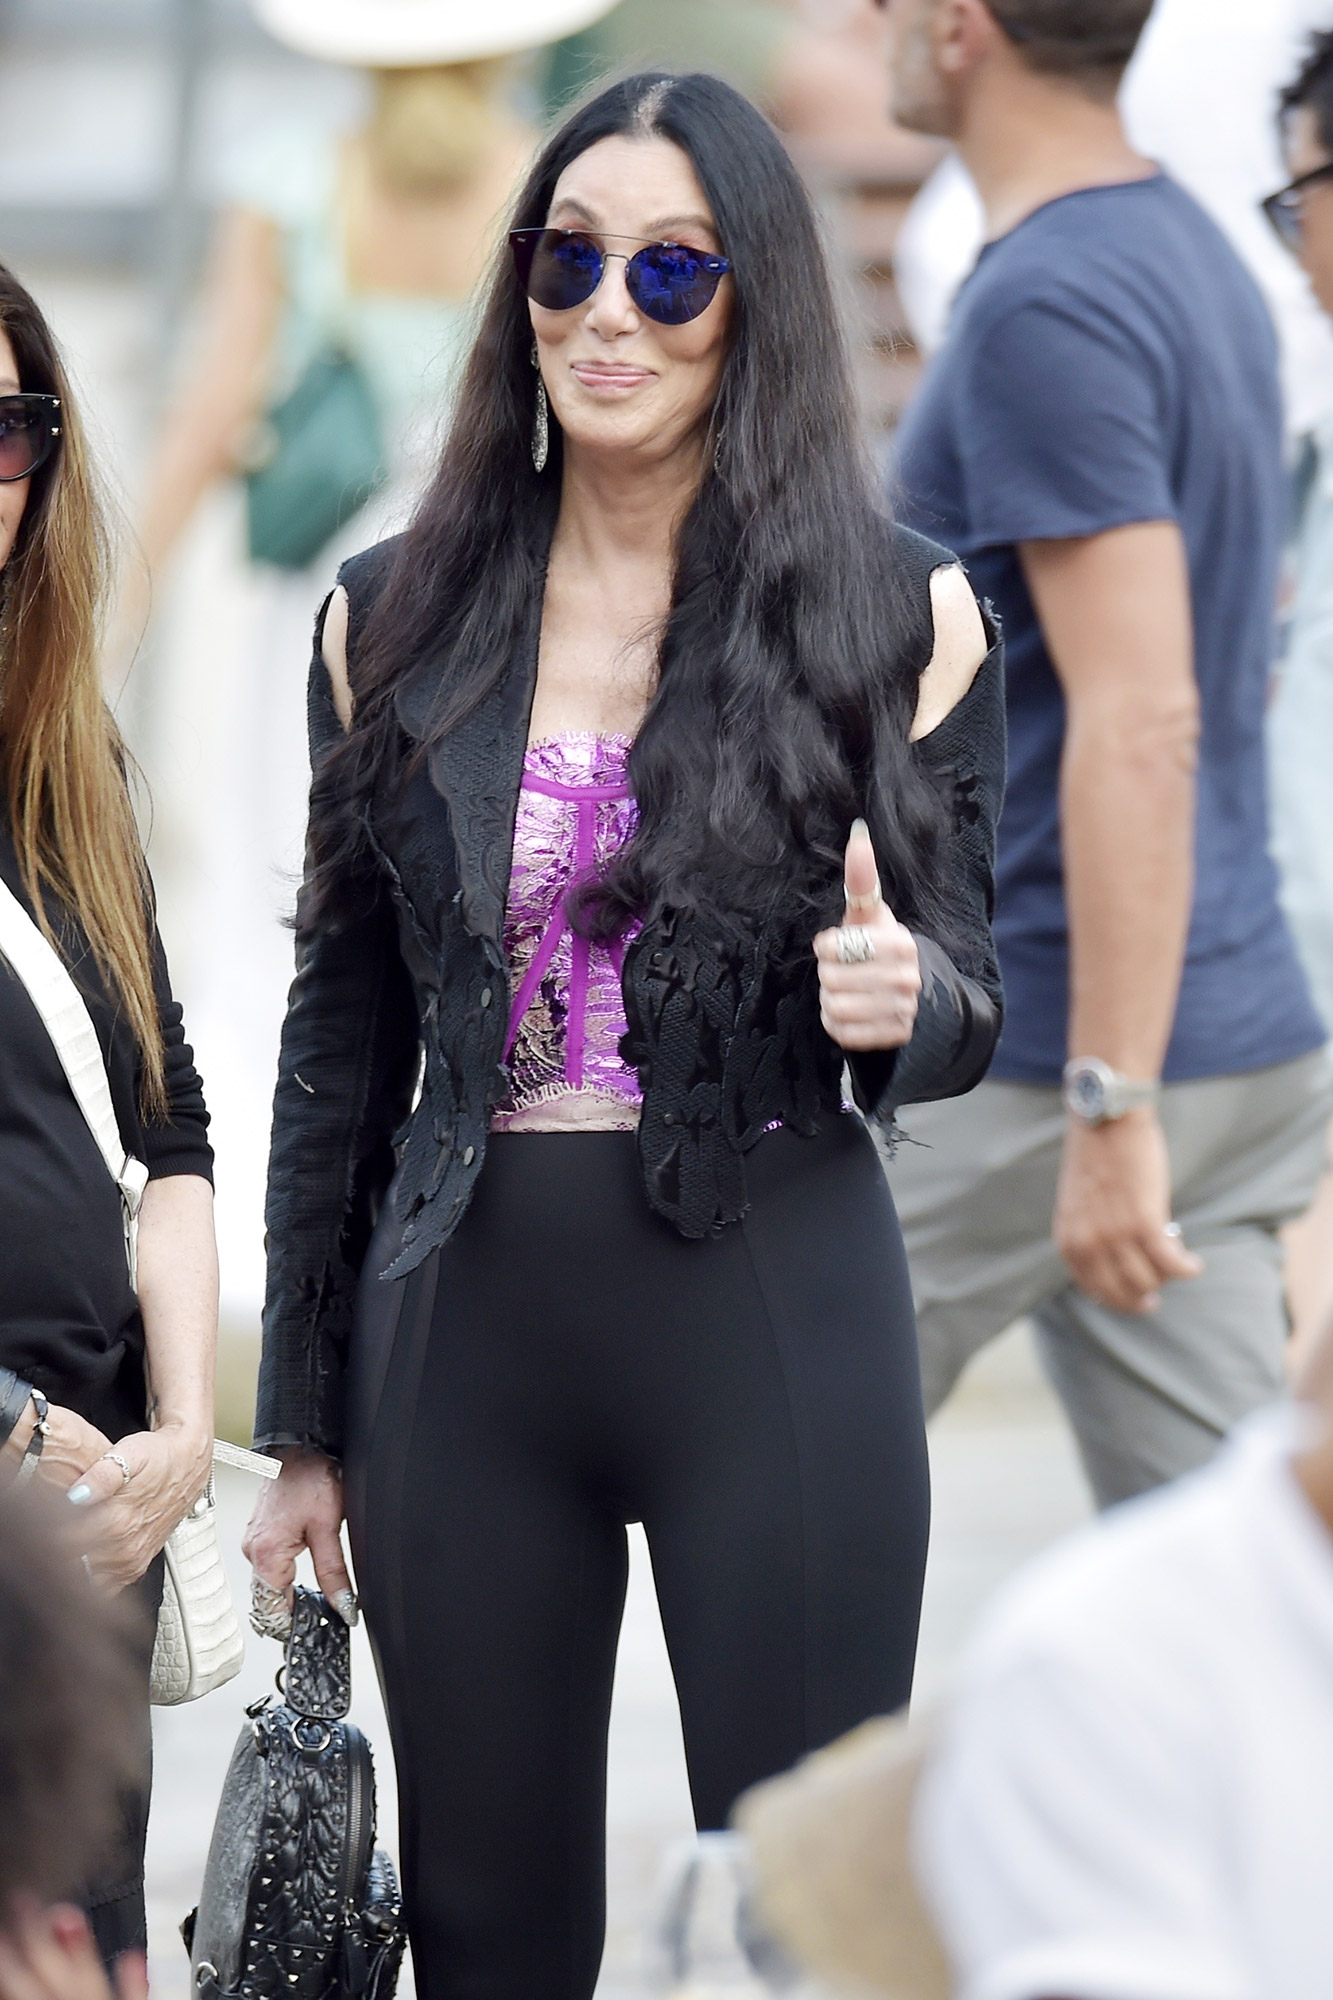 Cher enjoys the sights in Portofino after dining with friends.